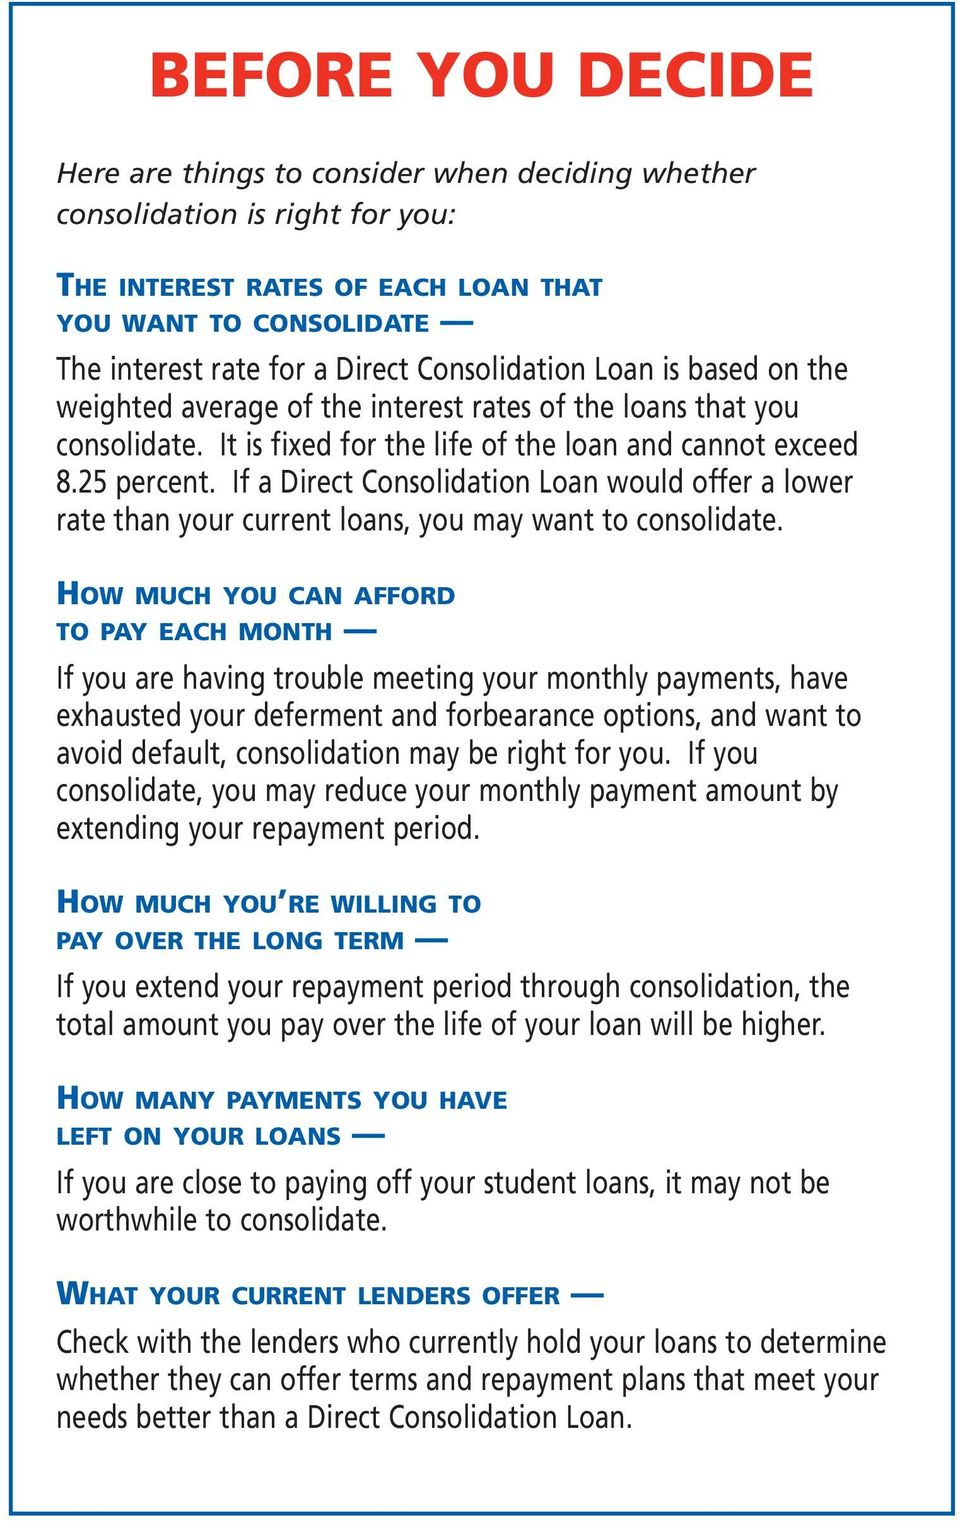 If a Direct Consolidation Loan would offer a lower rate than your current loans, you may want to consolidate.